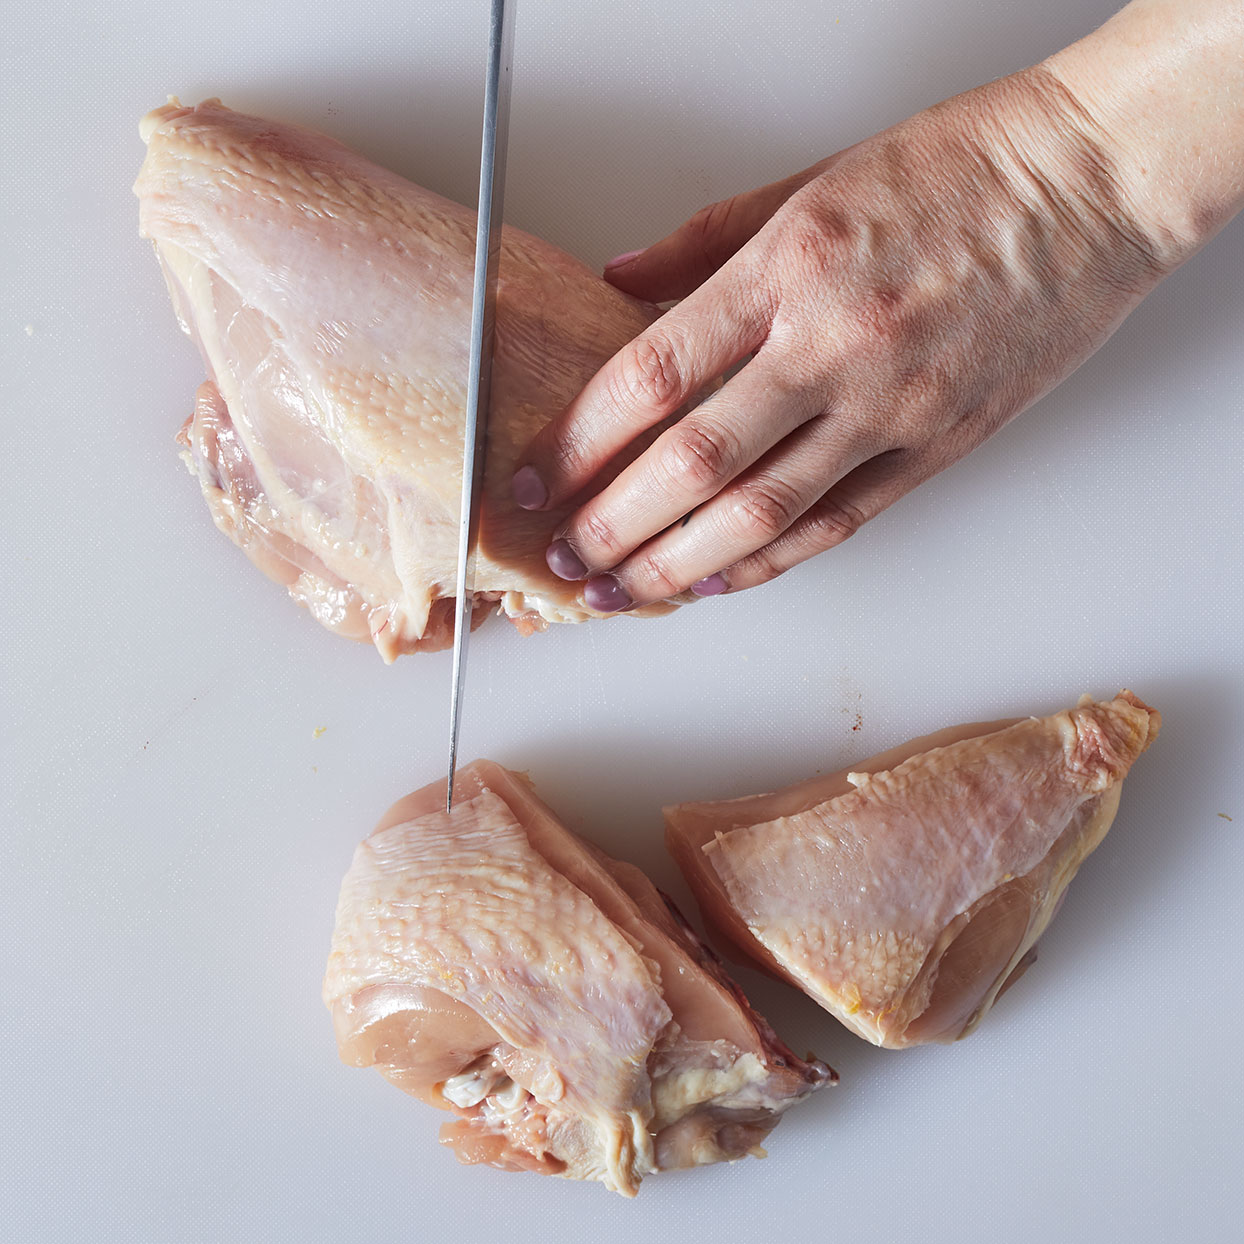 How-to-cut-up-a-whole-chicken-step-7